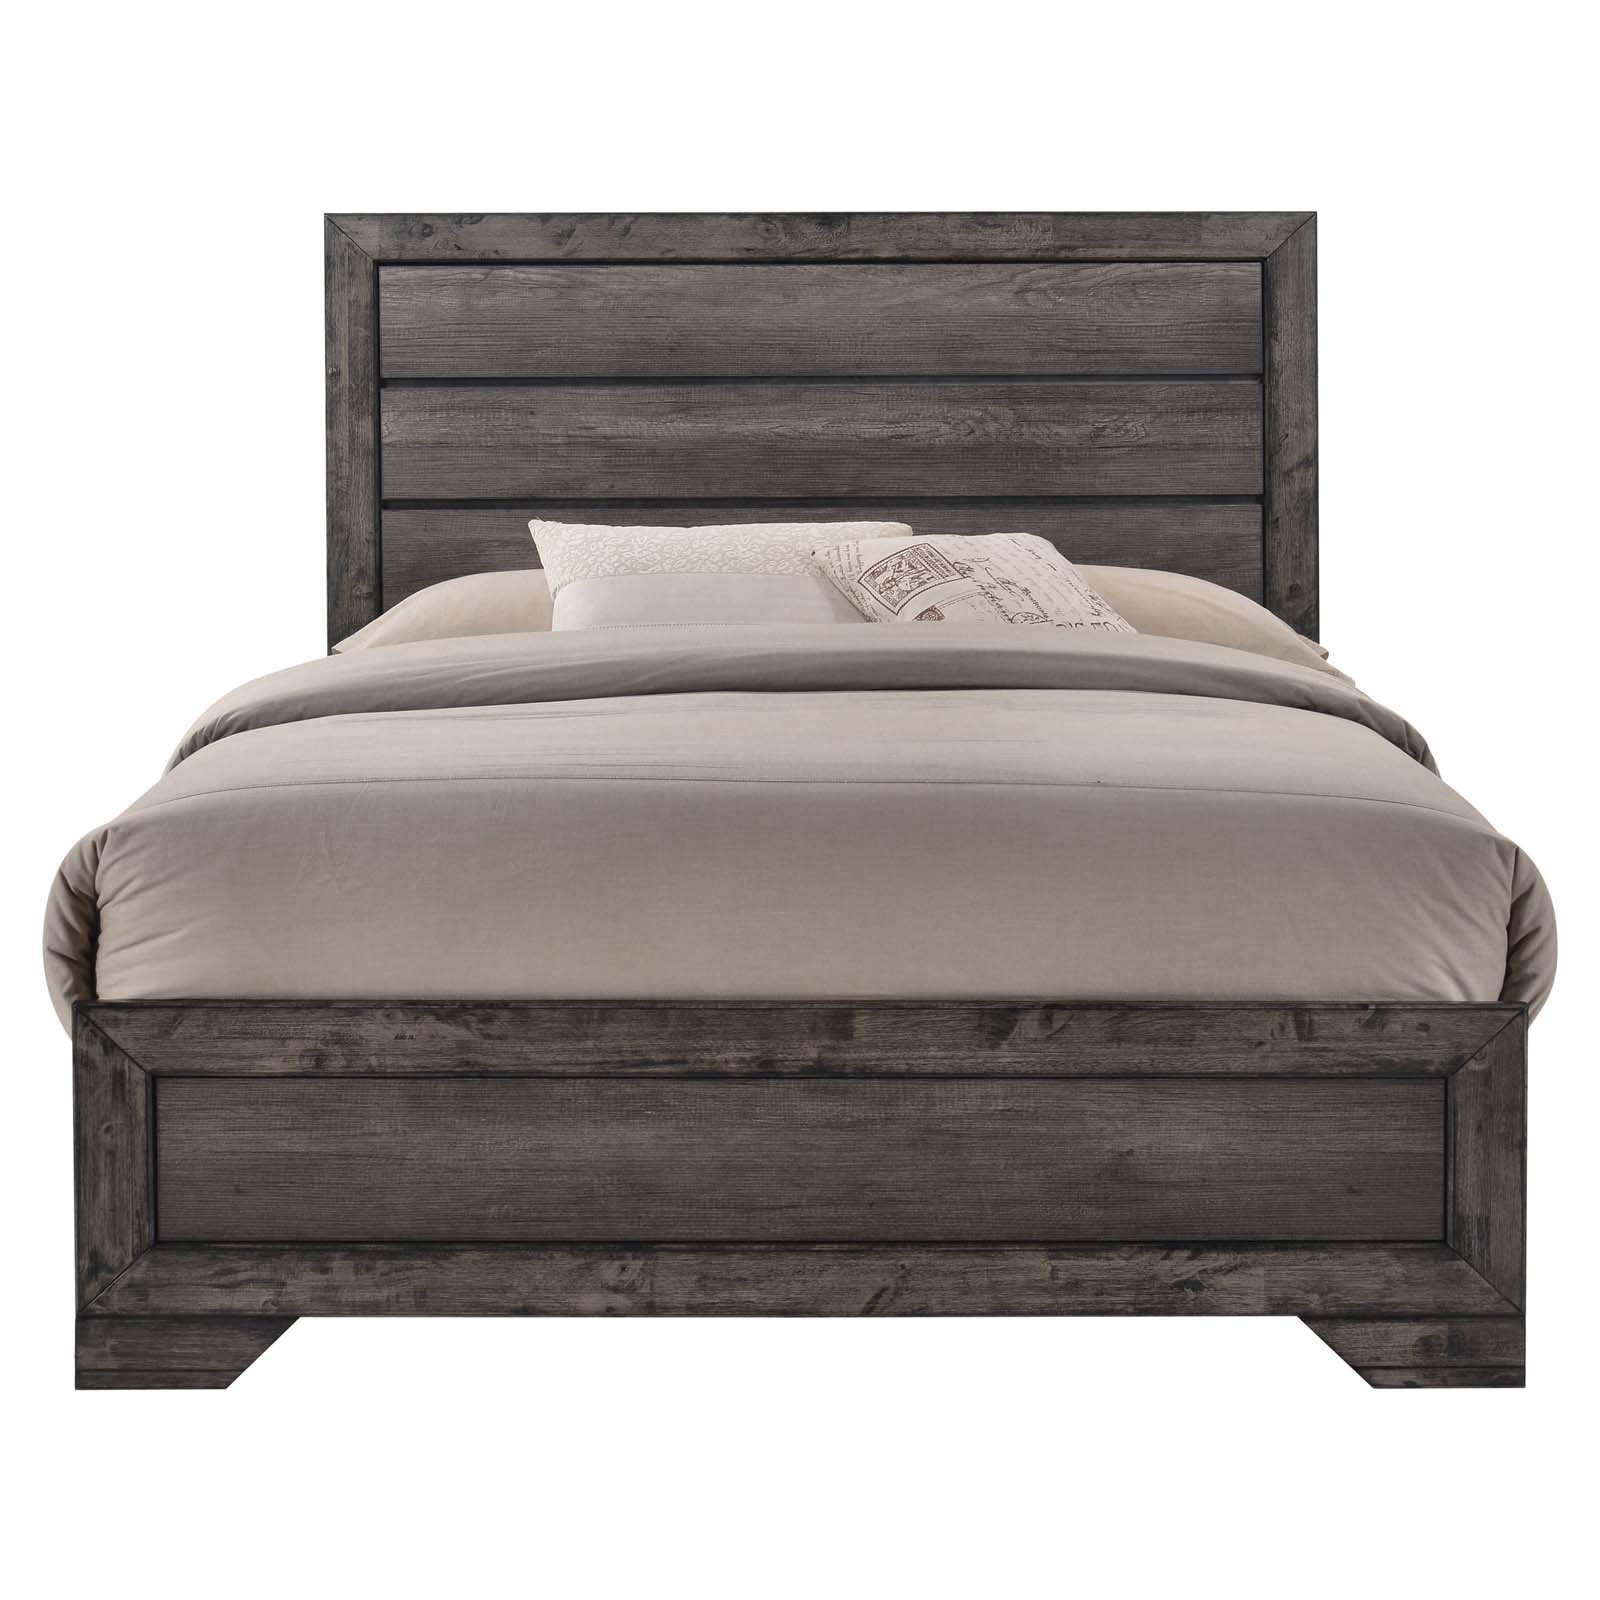 Picket House Furnishings Grayson Panel Bed